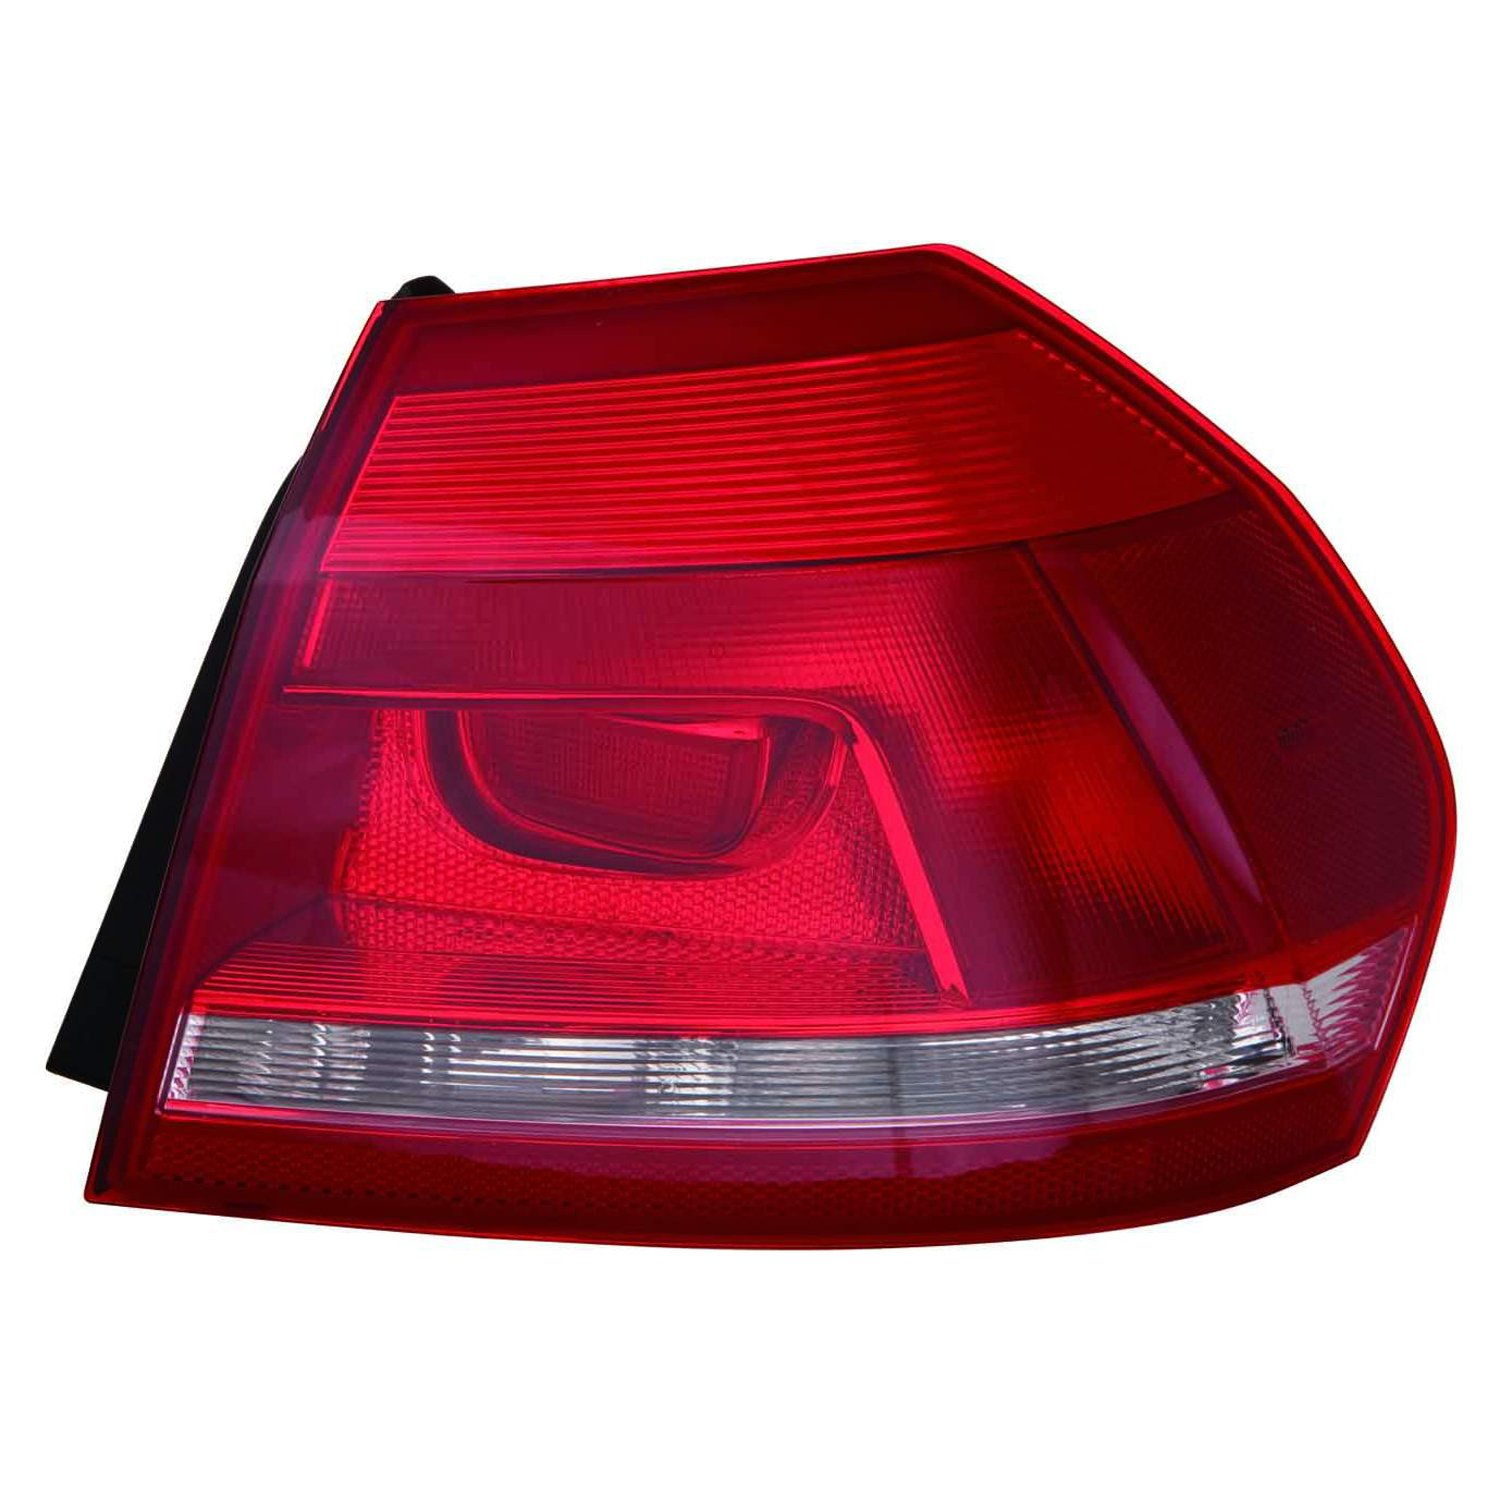 Multiple Manufacturers VW2805108N 2012-2015 Partslink VW2805108 OE Replacement Tail Light Assembly VOLKSWAGEN PASSAT 2012+